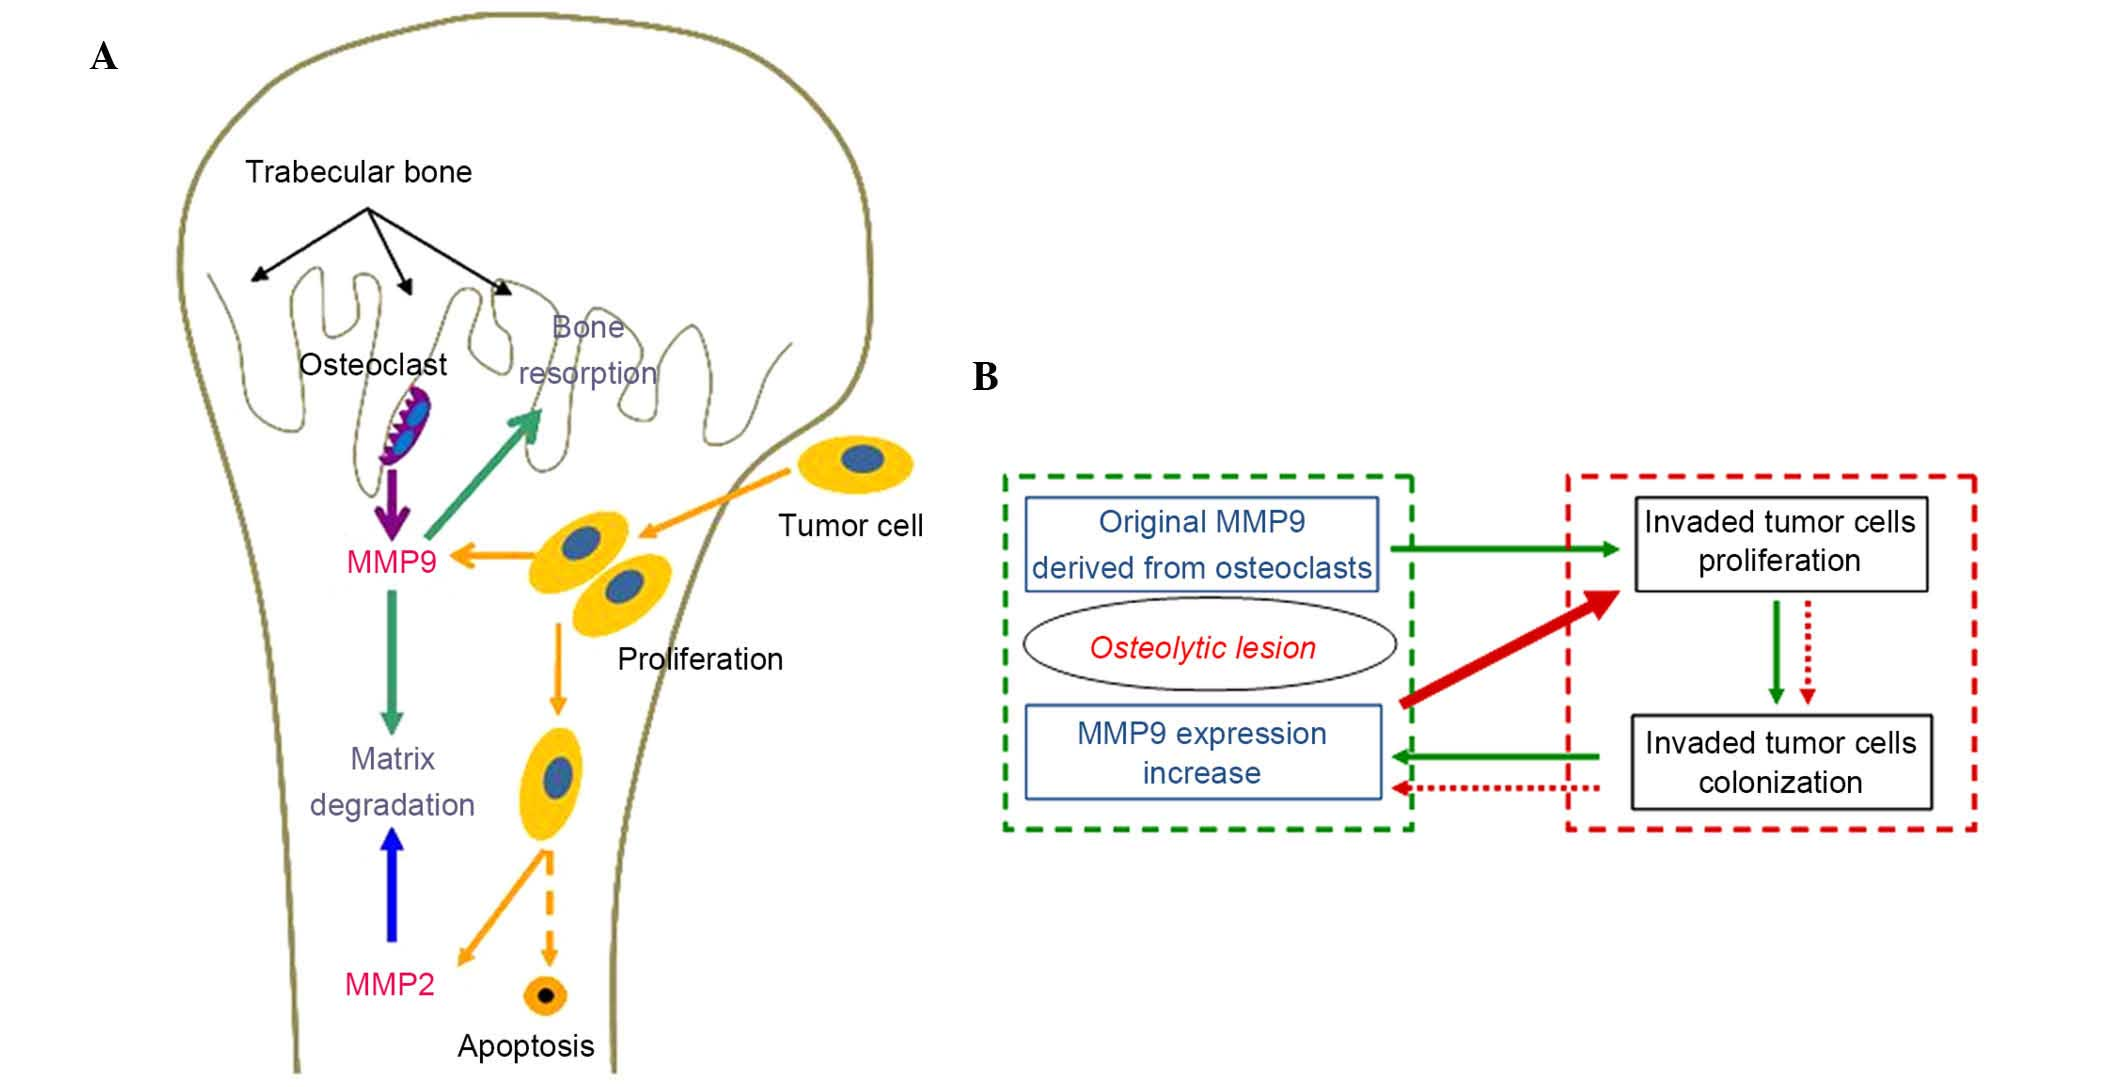 The vicious cycle of metastatic breast cancer in bone